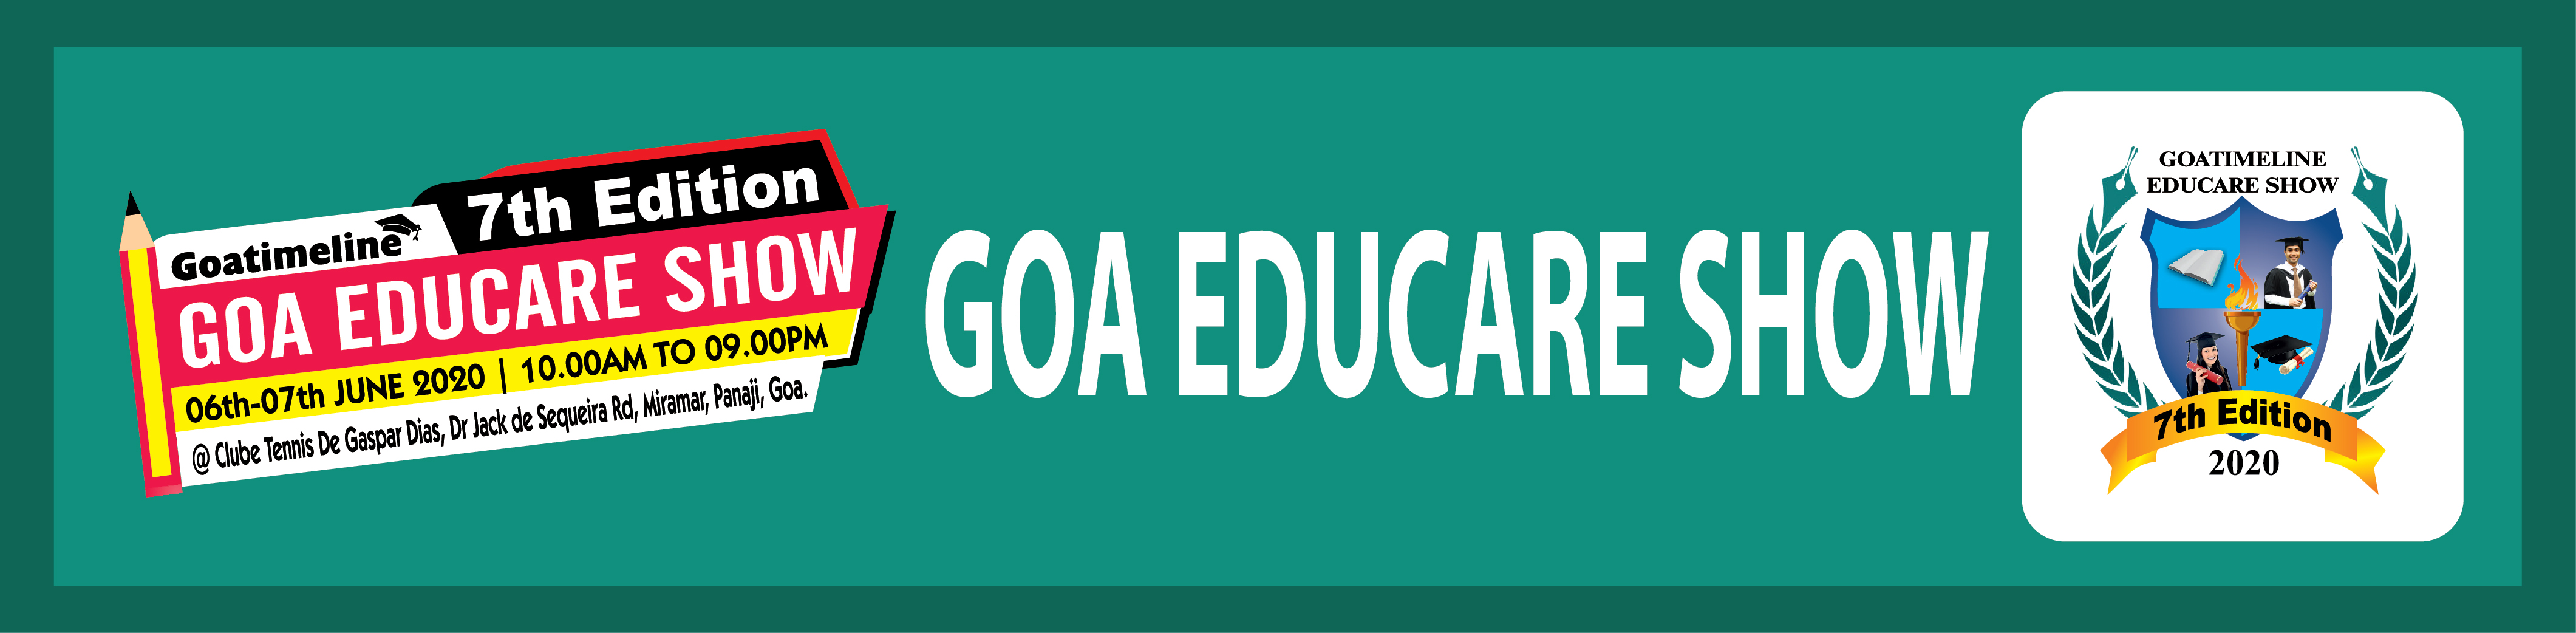 Goa Educare Show